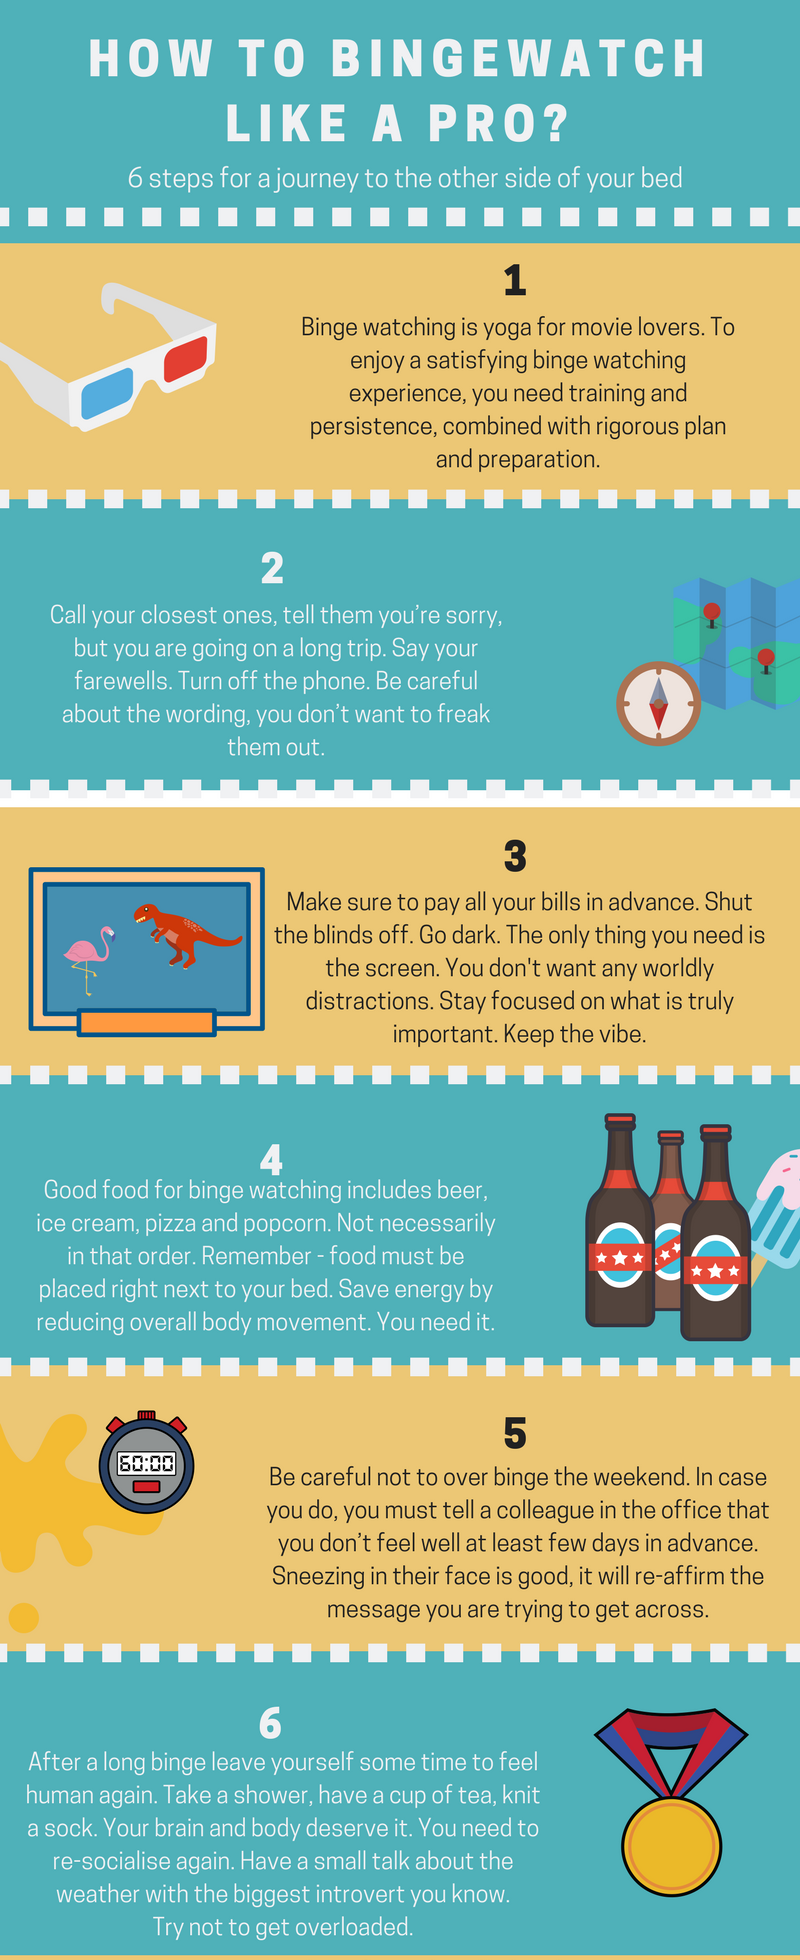 How To Binge Watch Like A Pro